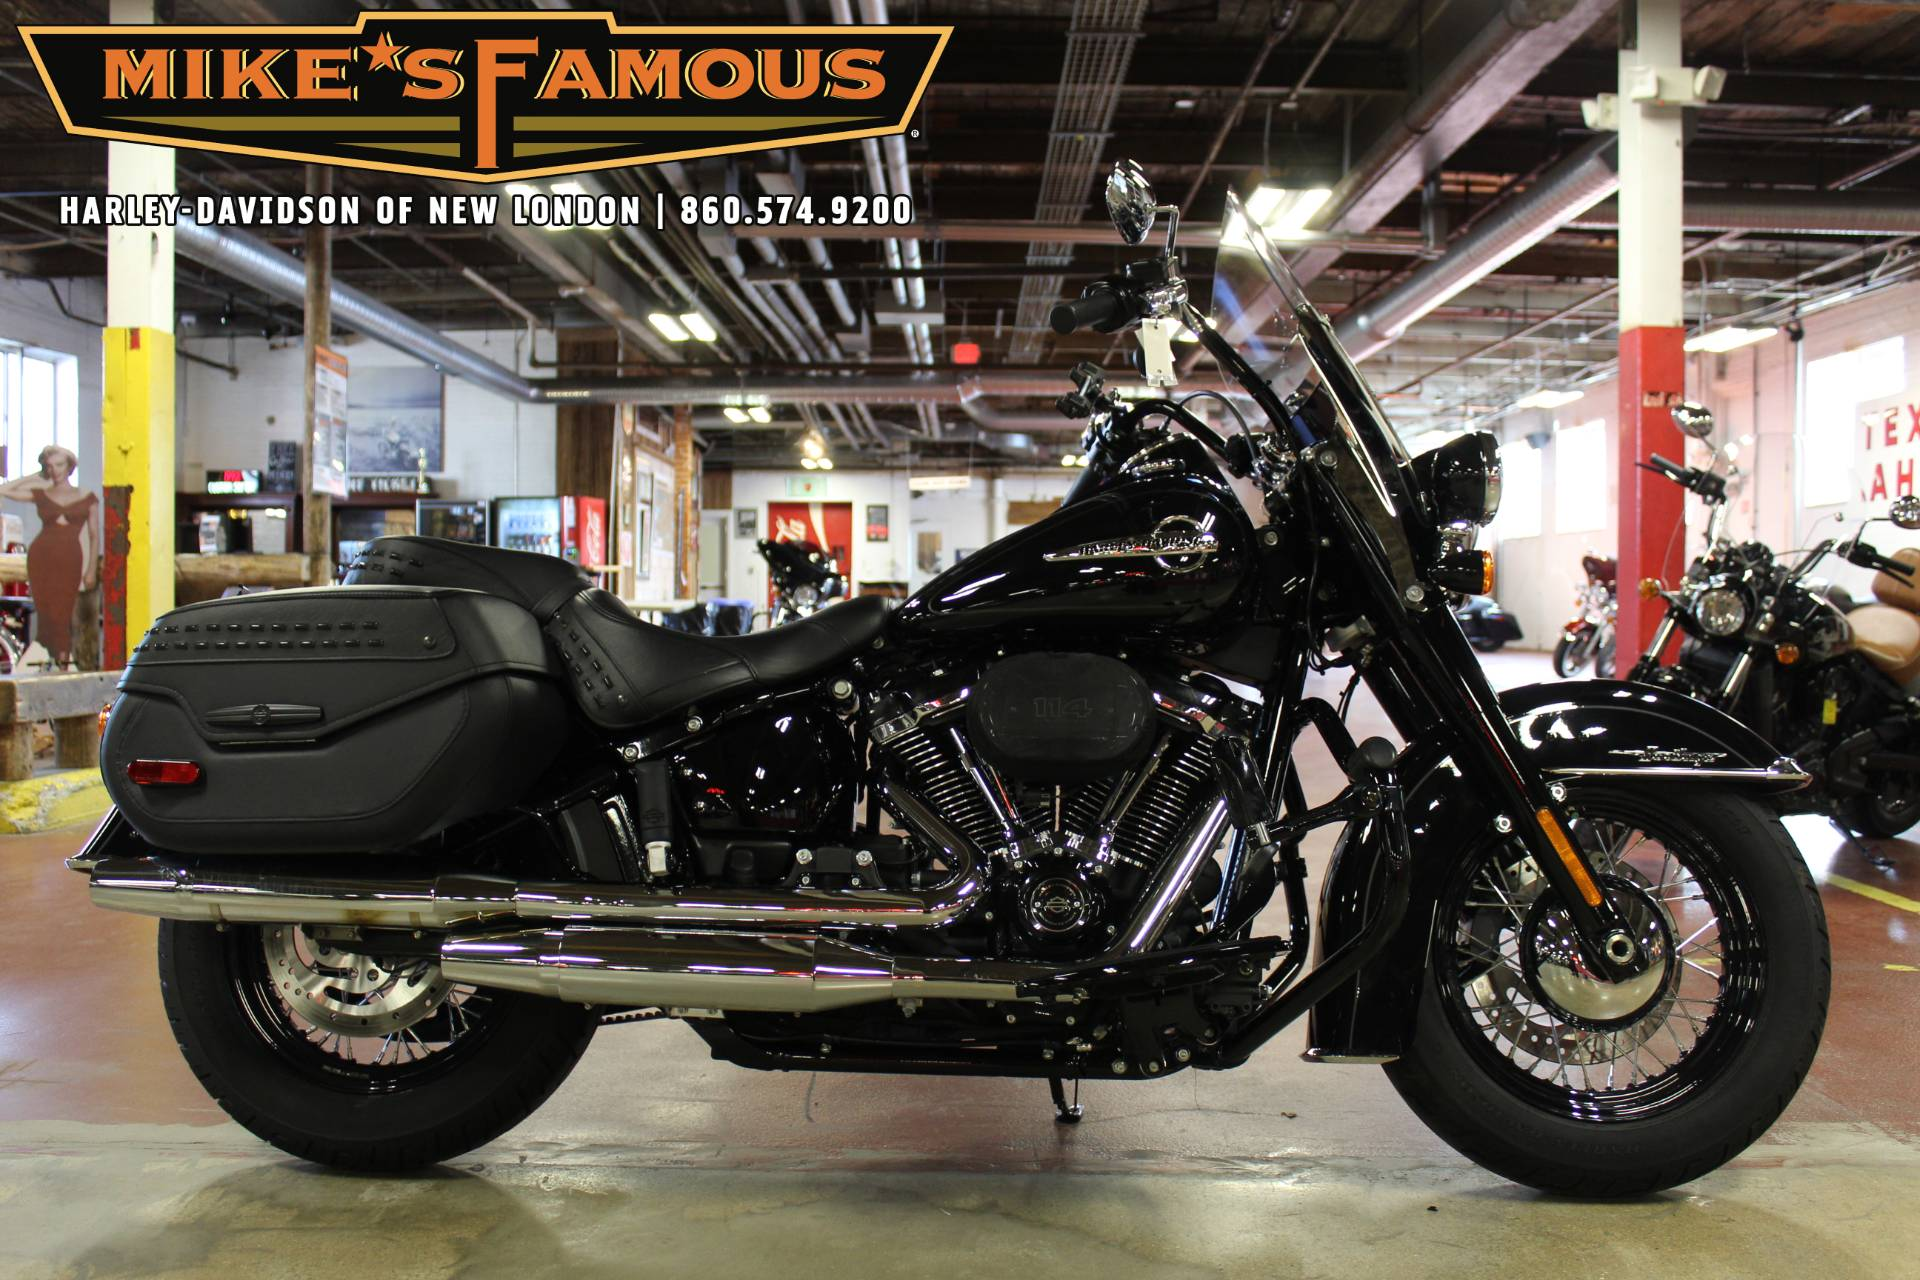 2019 Harley-Davidson Heritage Classic 114 in New London, Connecticut - Photo 1